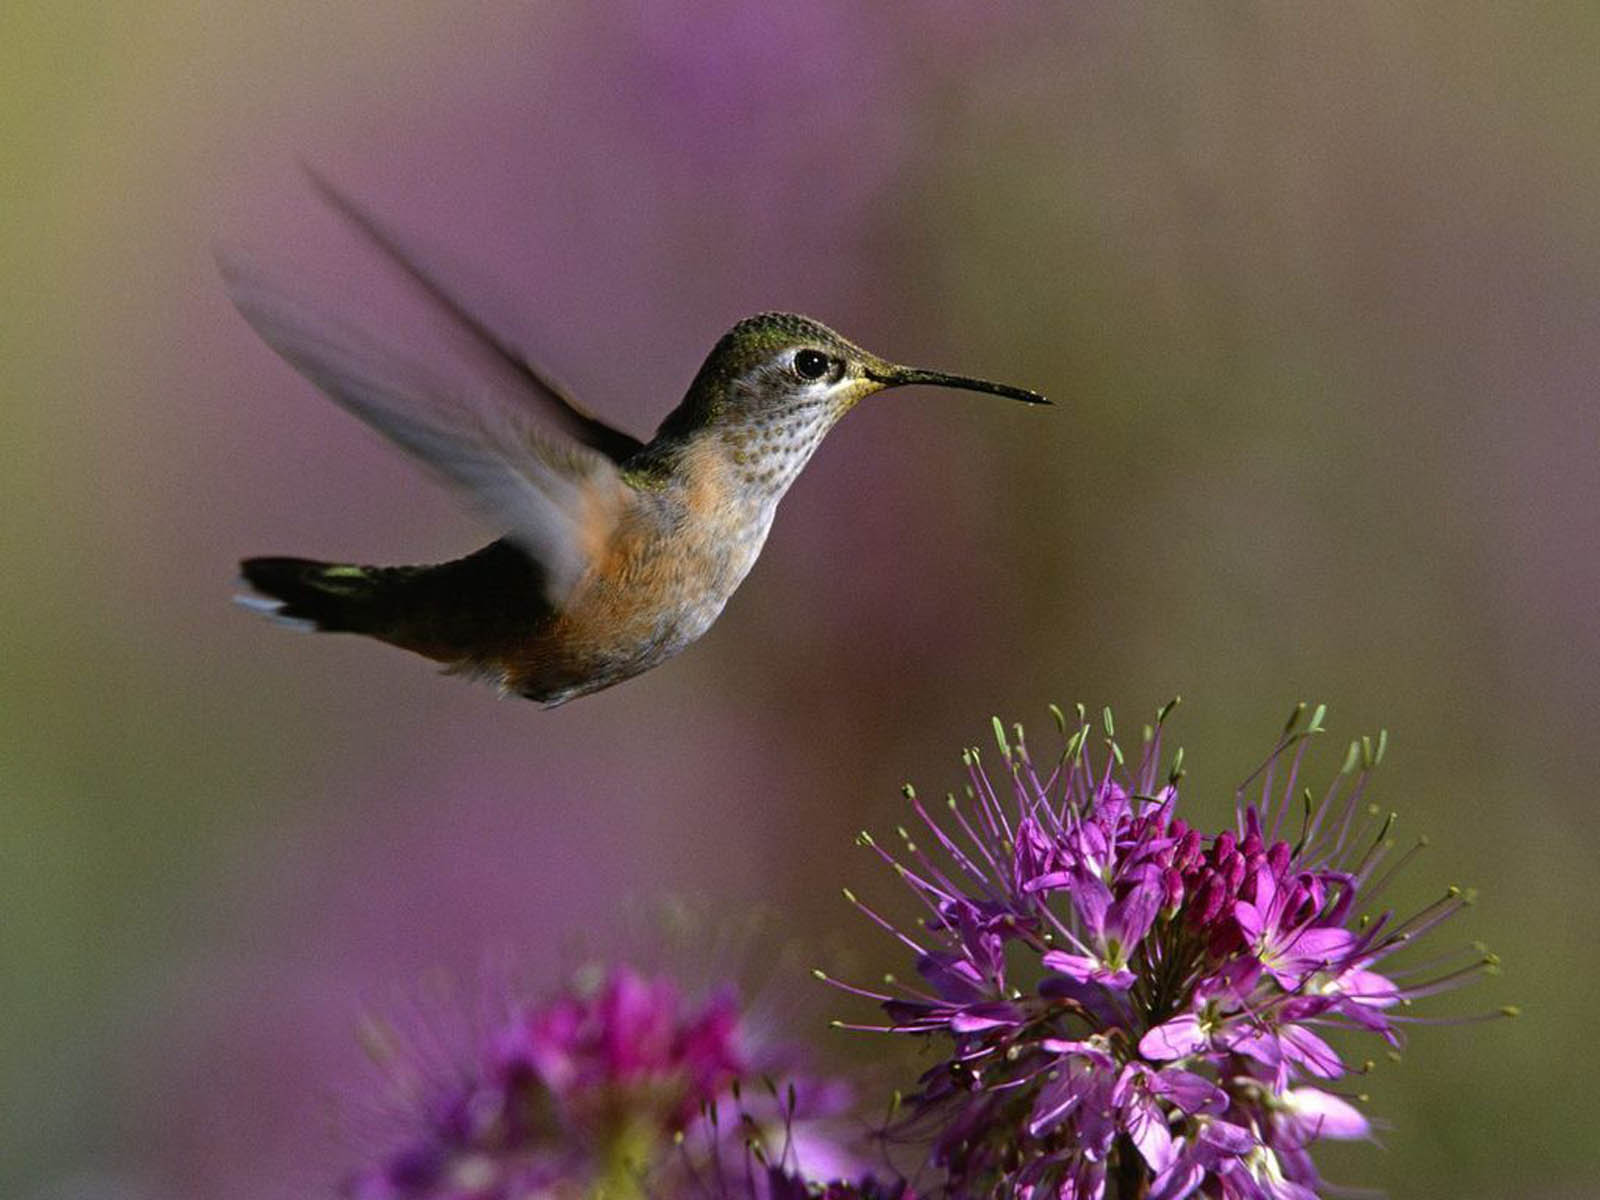 Download Free Hummingbird Wallpapers: Wallpapers: Hummingbird Wallpapers